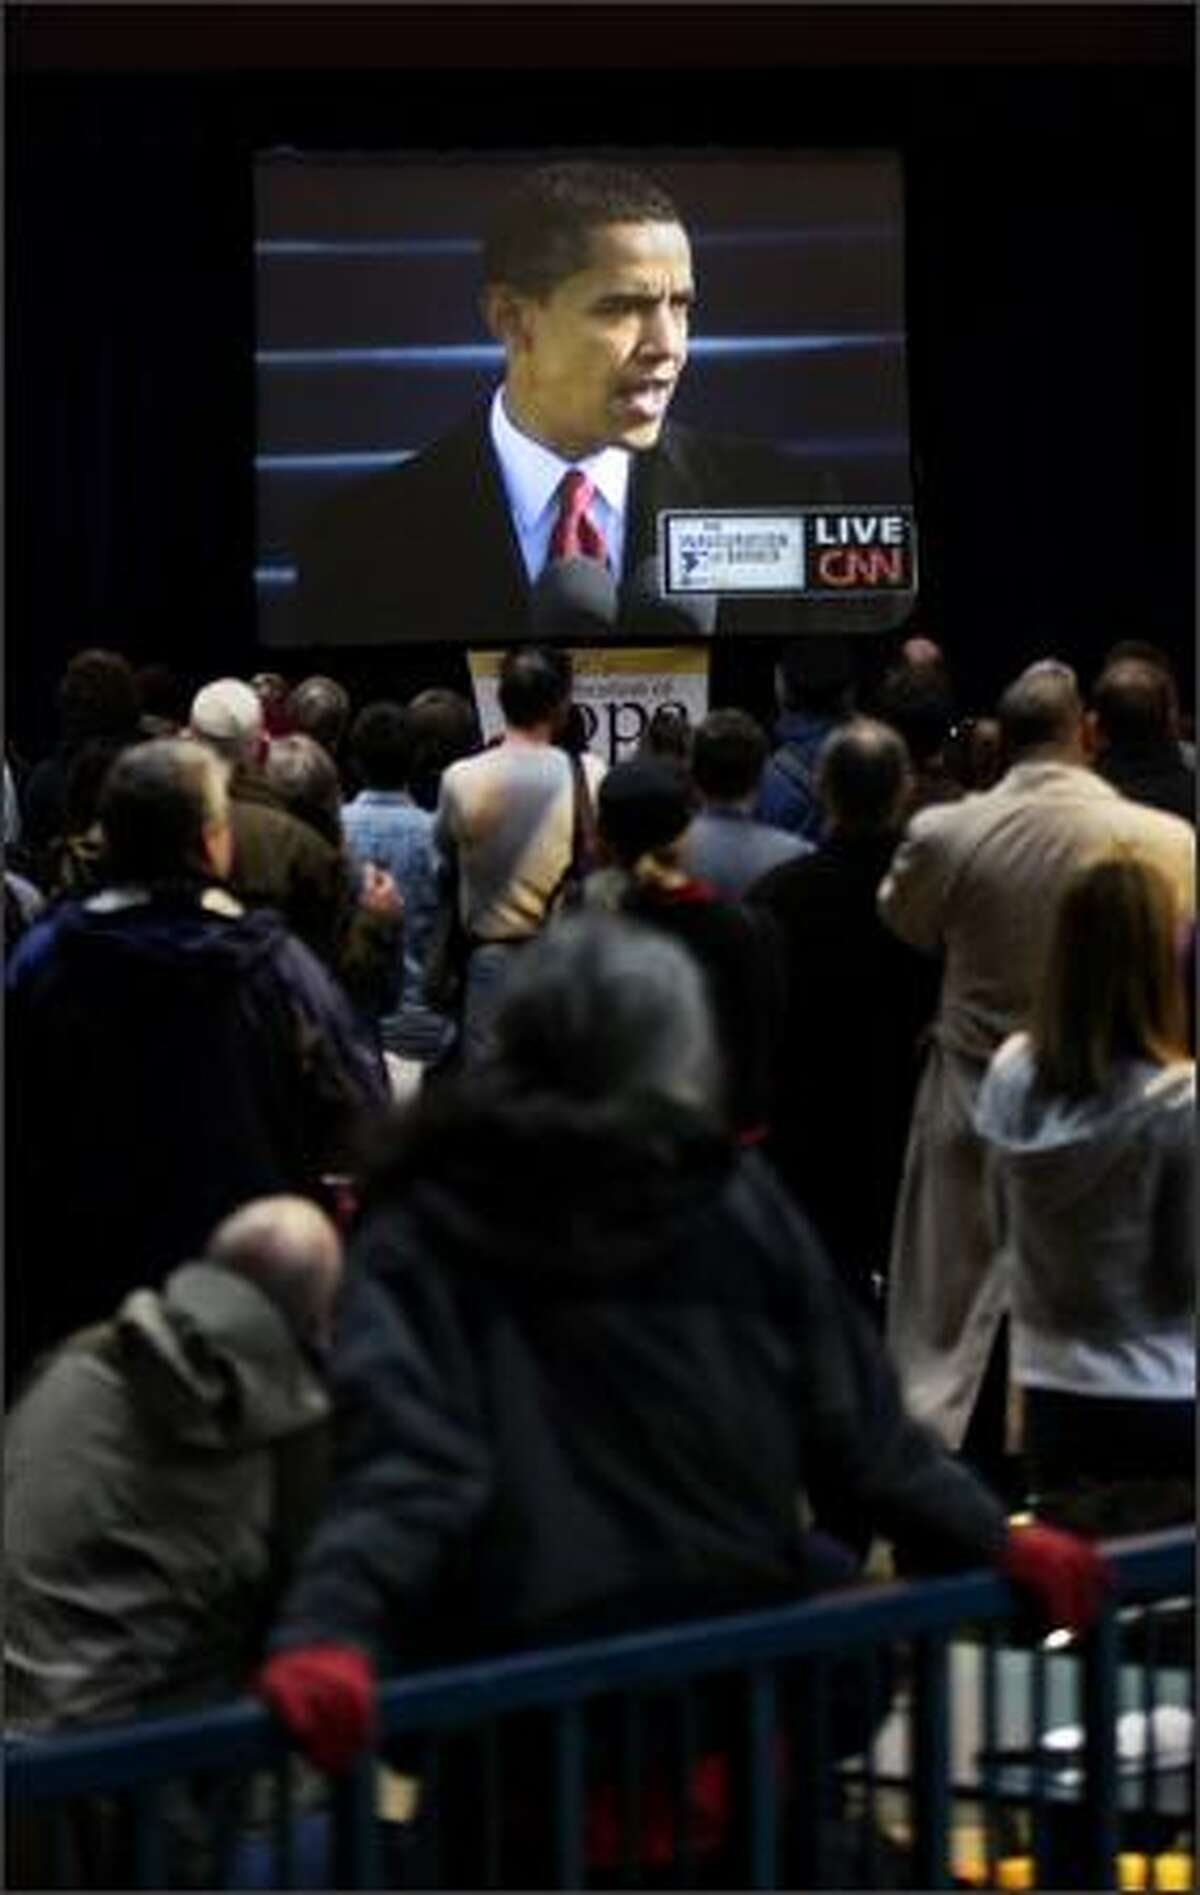 A crowd gathers at Center House at the Seattle Center to watch a live telecast of Barack Obama's inauguration ceremony.